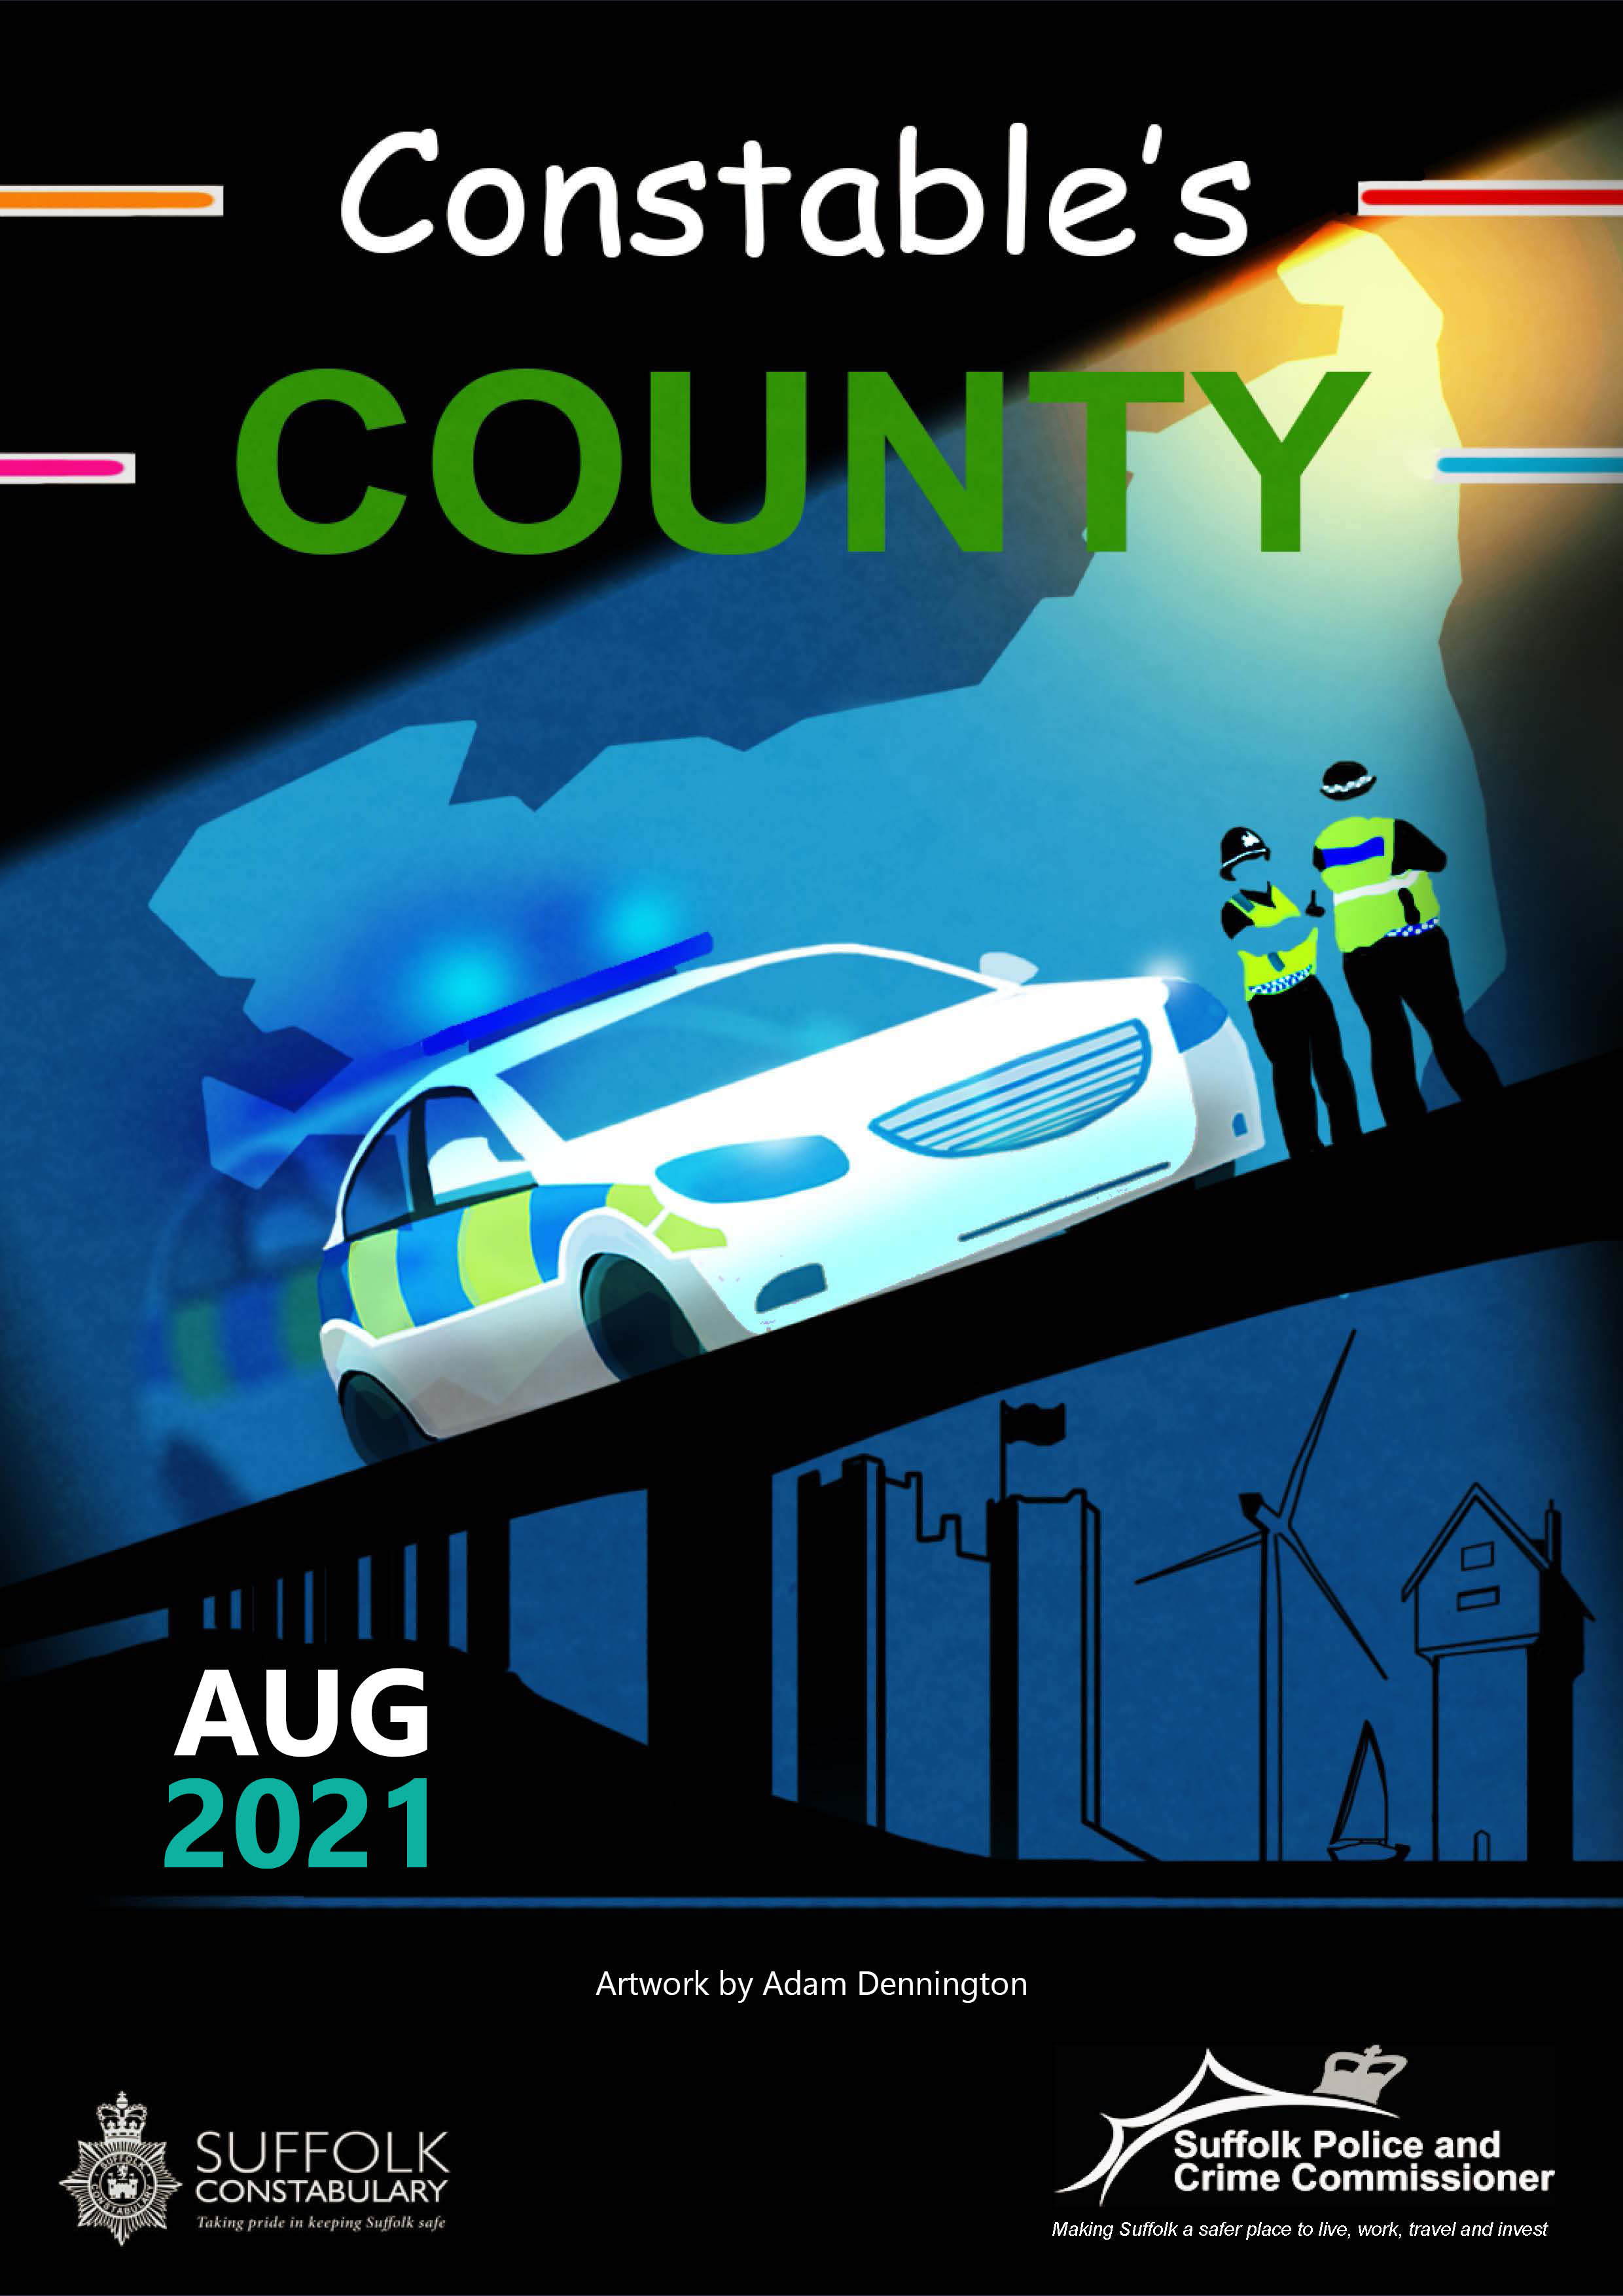 CEO Constables County August